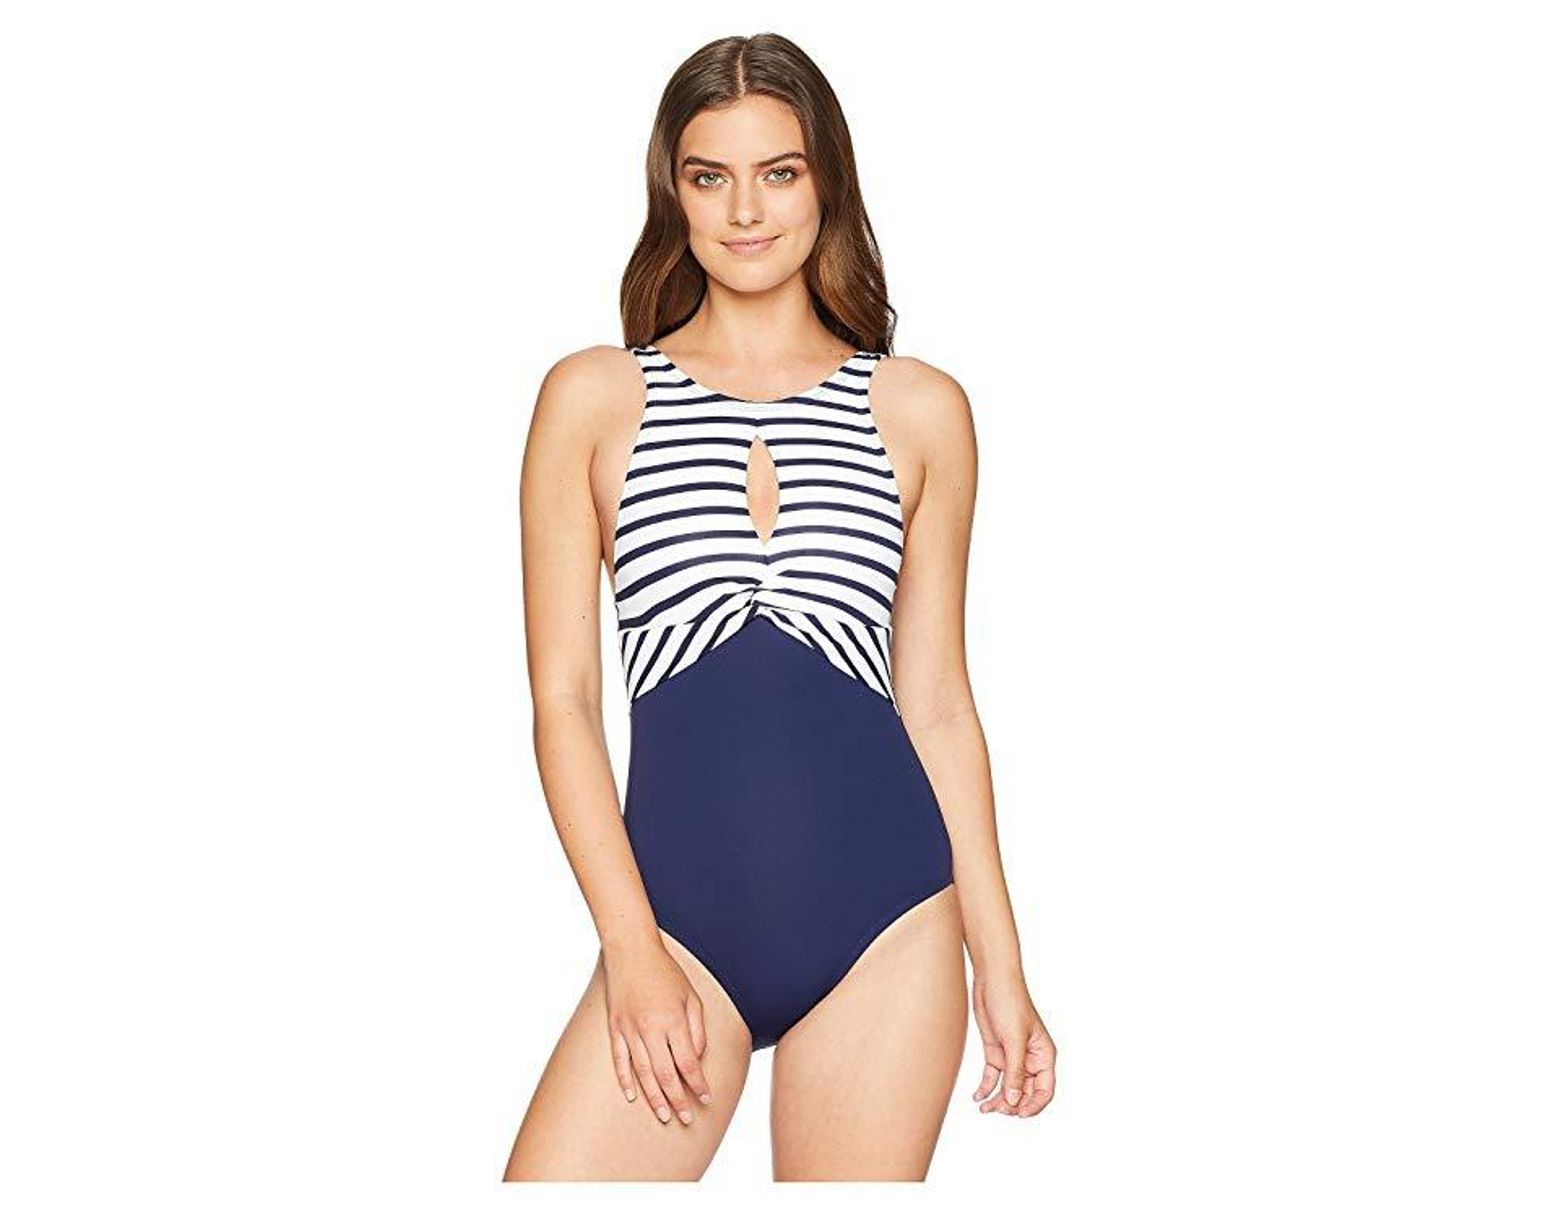 c97edb3834 Tommy Bahama Channel Surfing Twist-front High-neck One-piece Swimsuit in  Blue - Save 42% - Lyst